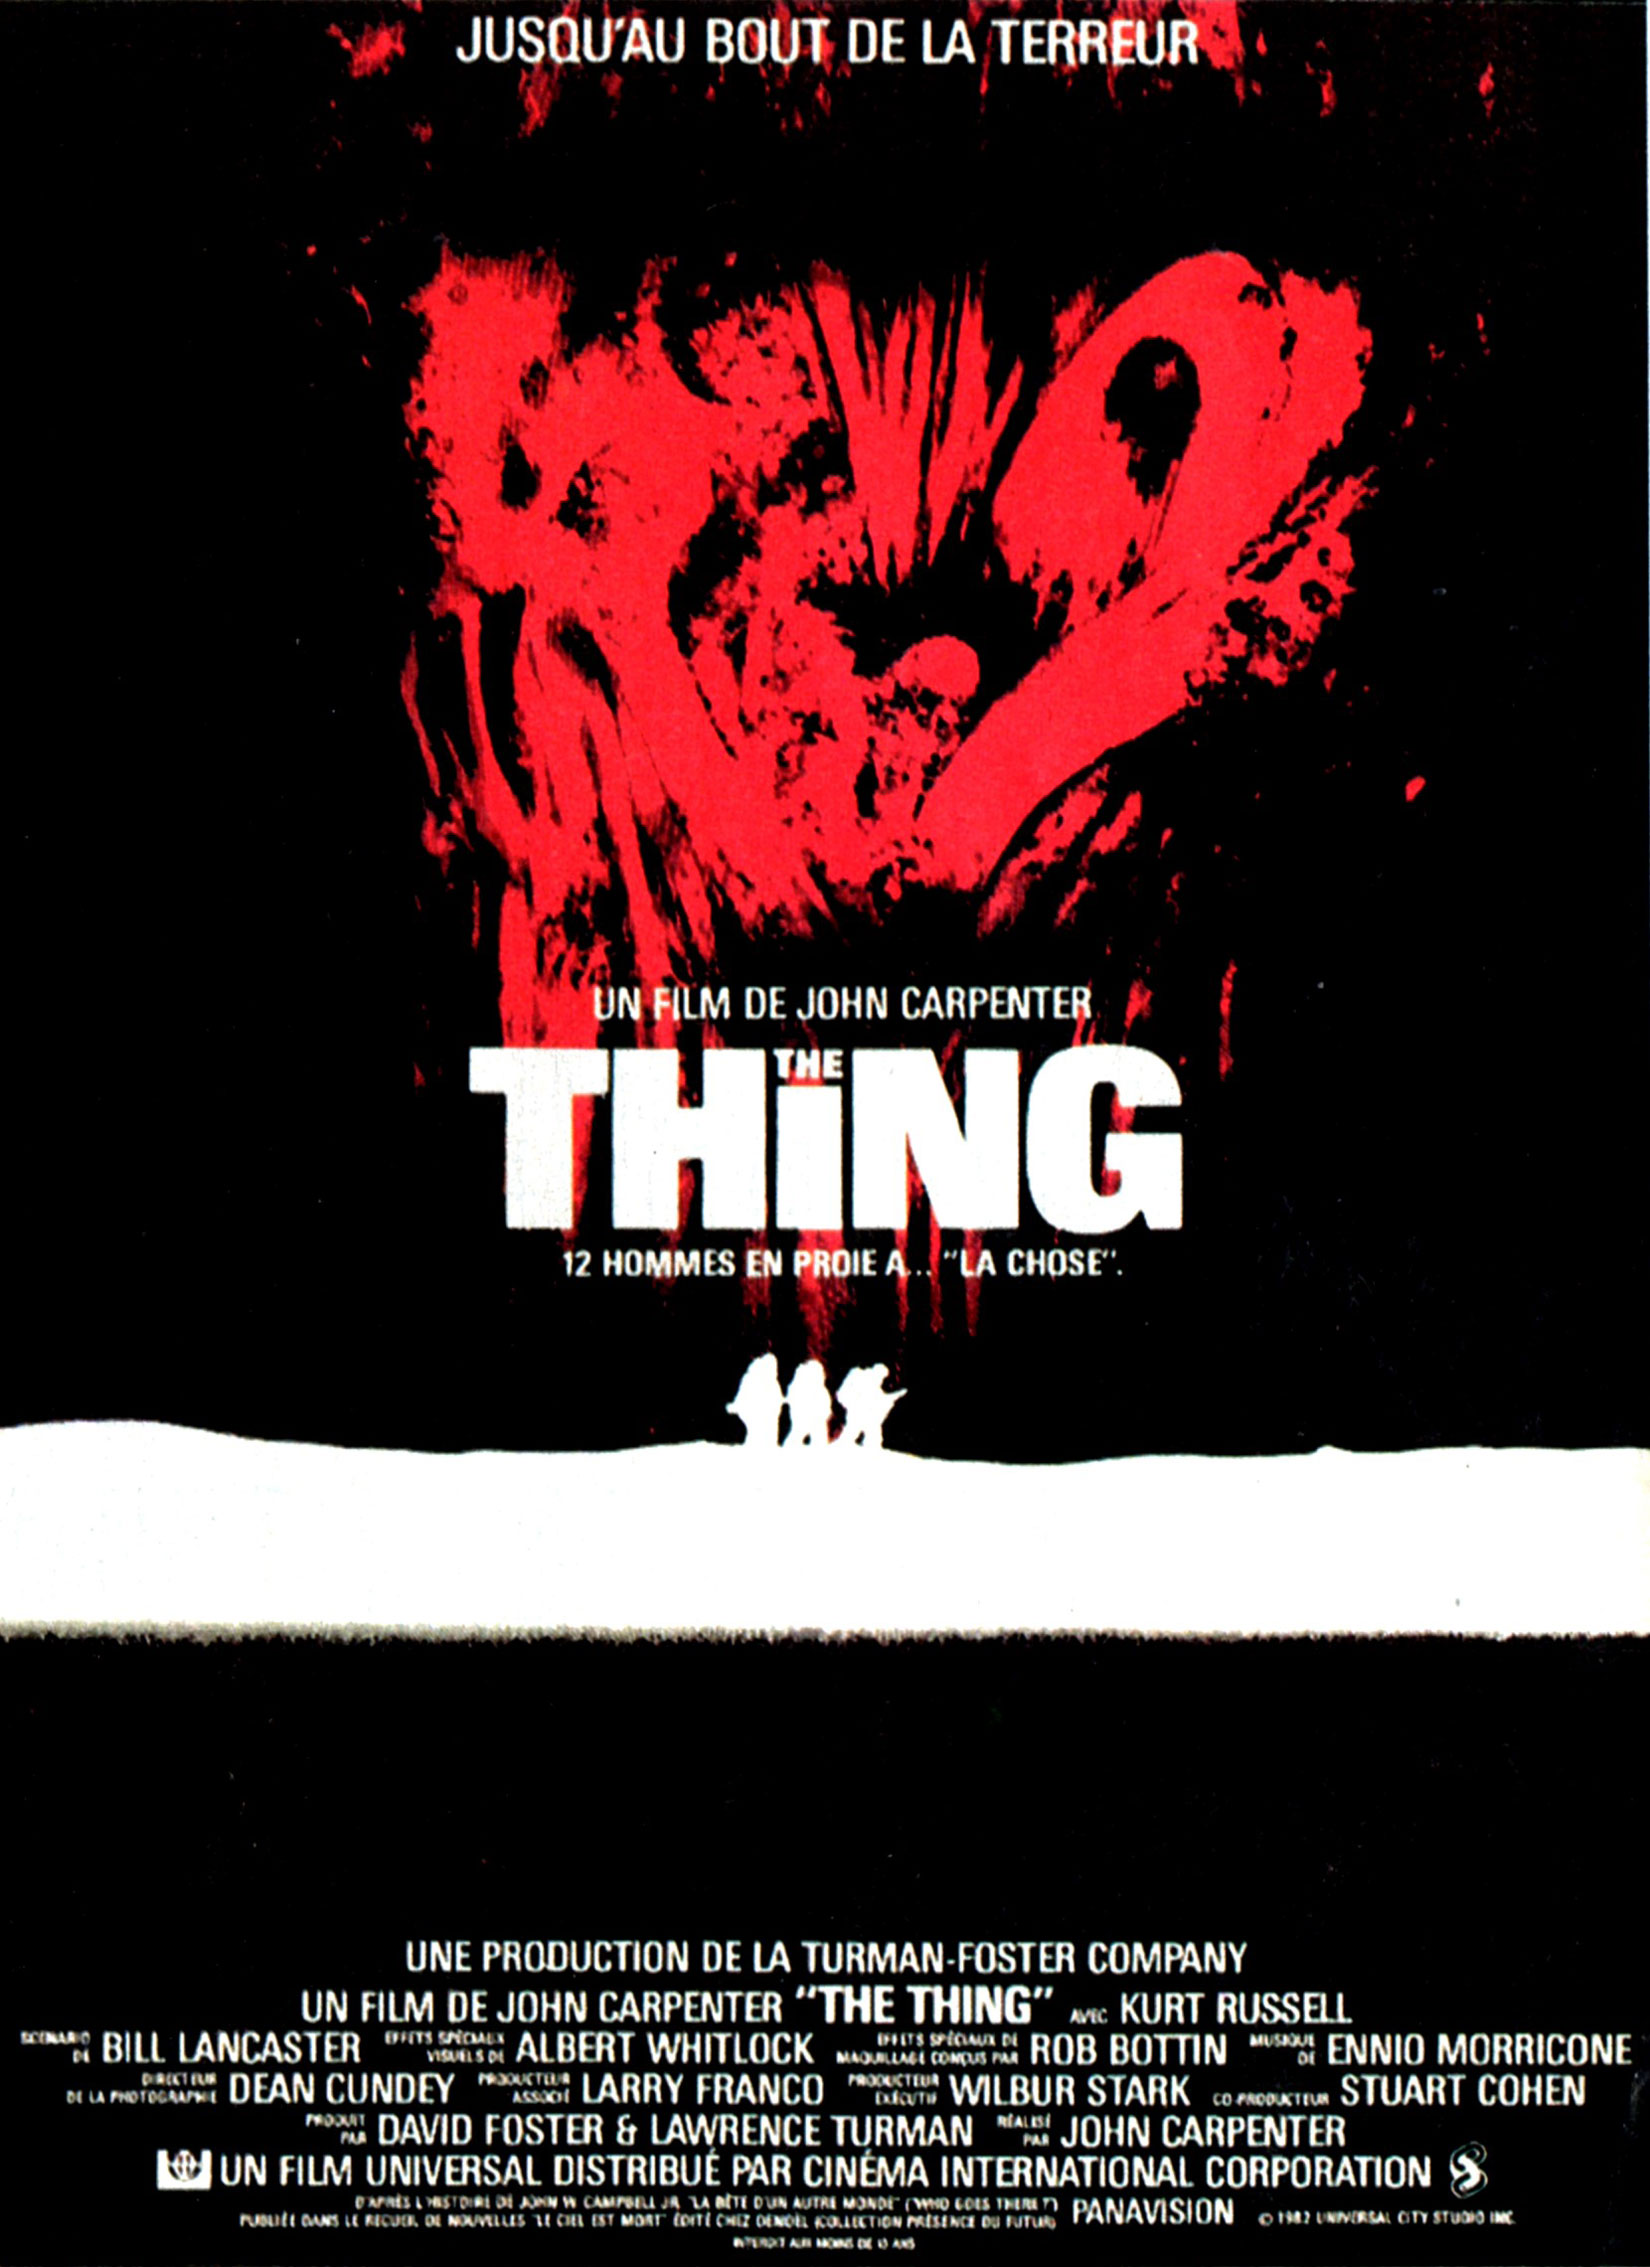 The Thing - Afficche FR 1982